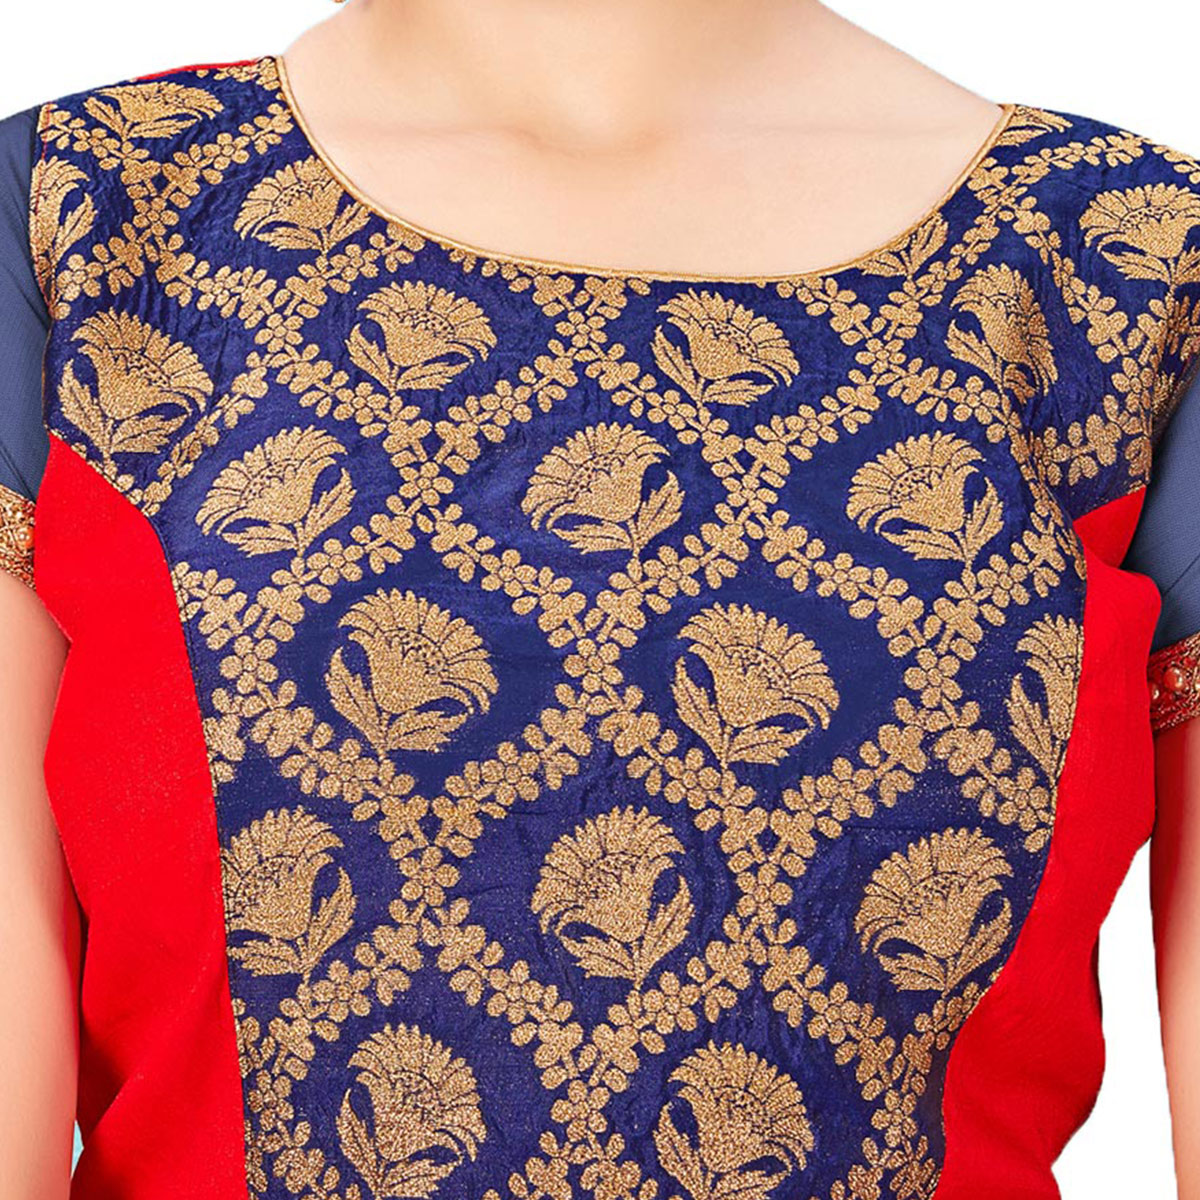 Irresistible Navy Blue-Red Colored Printed Jacquard Silk Blouse